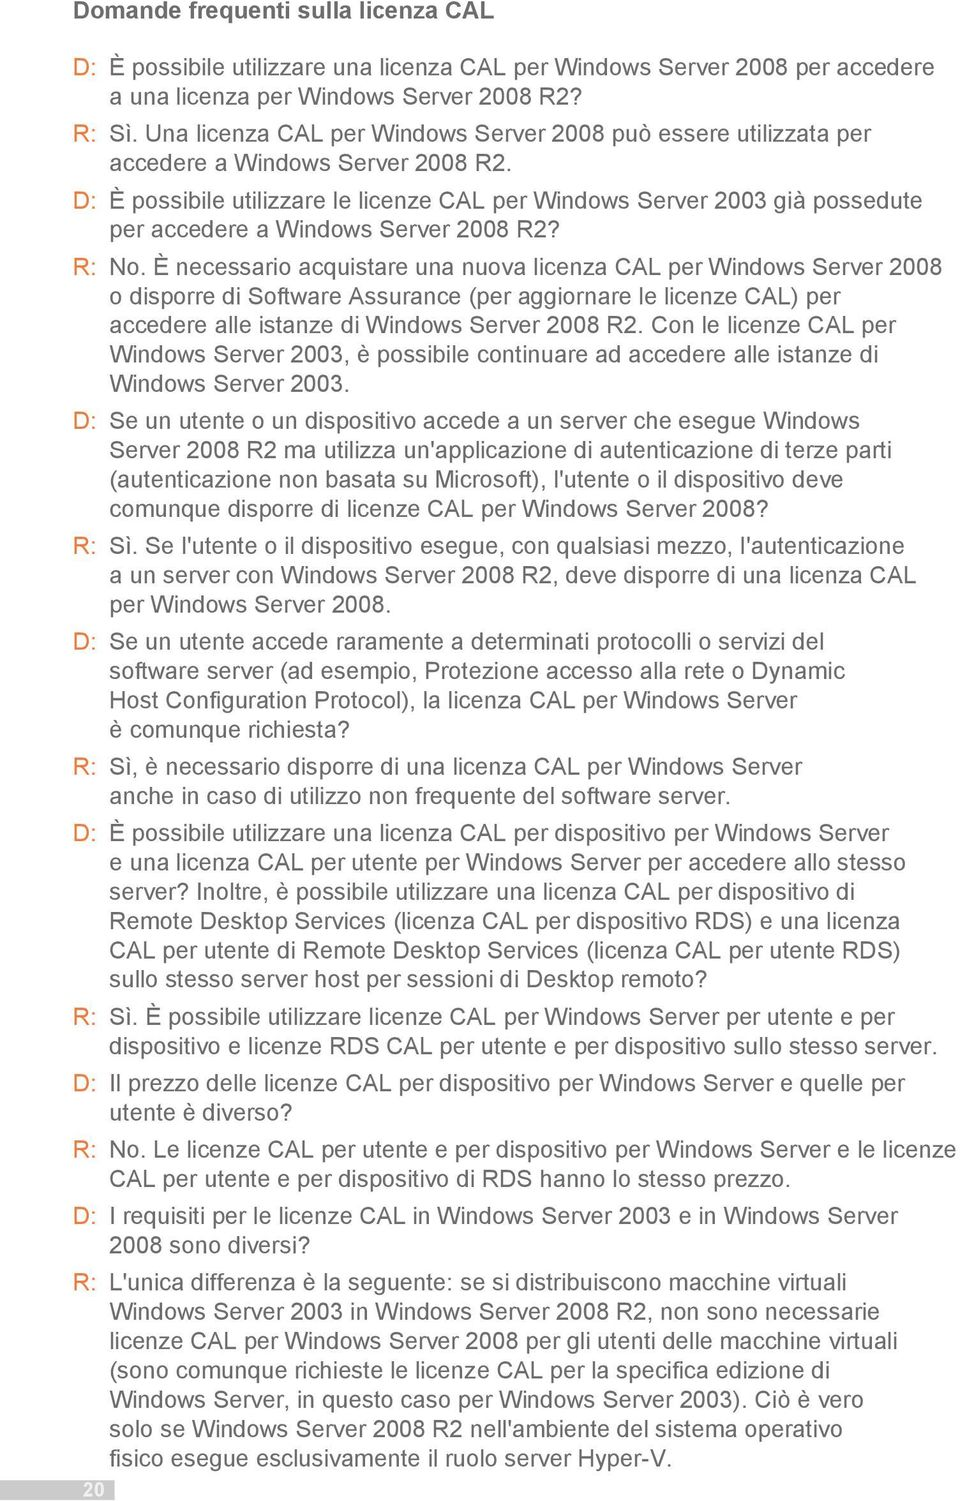 D: È possibile utilizzare le licenze CAL per Windows Server 2003 già possedute per accedere a Windows Server 2008 R2? R: No.